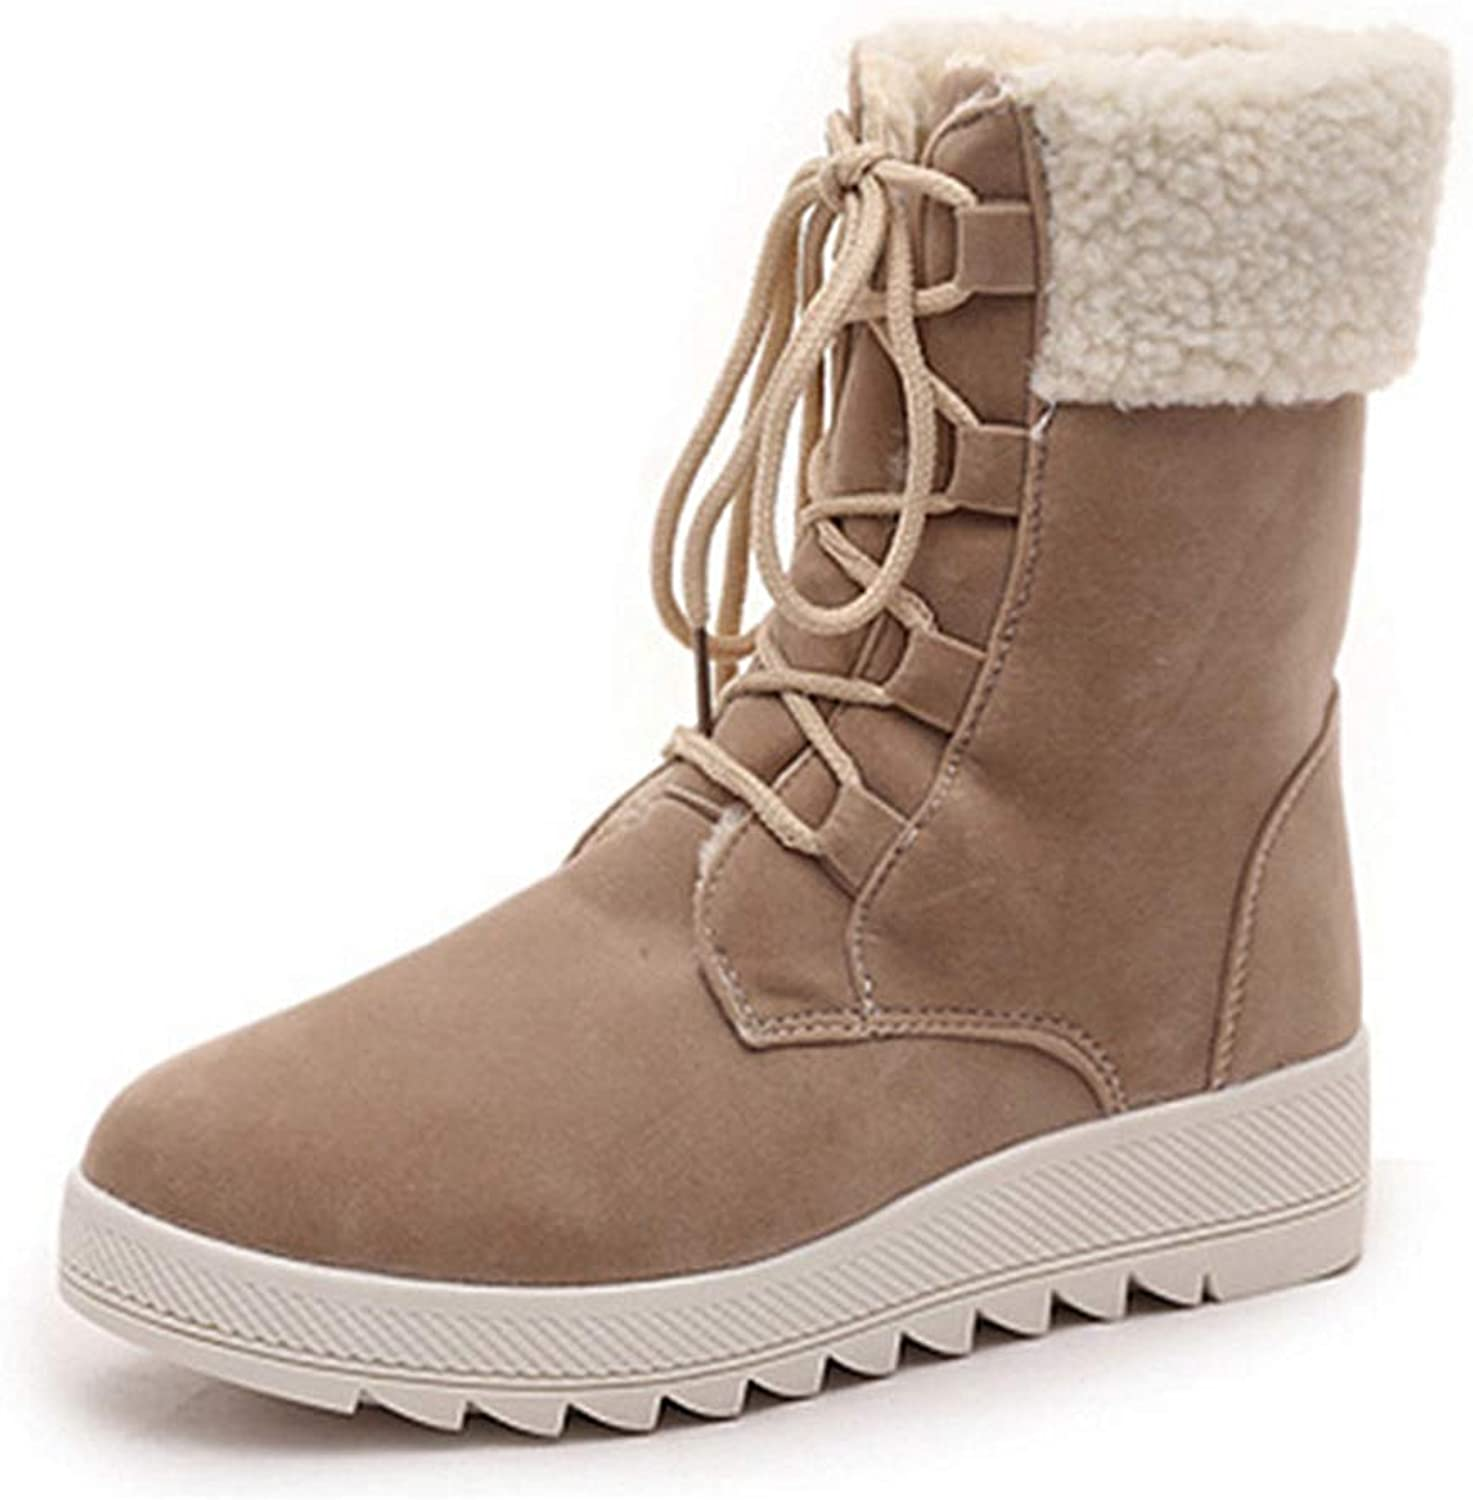 GIY Women's Round Toe Platform Short Boots Winter Faux Fur Lace up Waterproof Warm Snow Boots